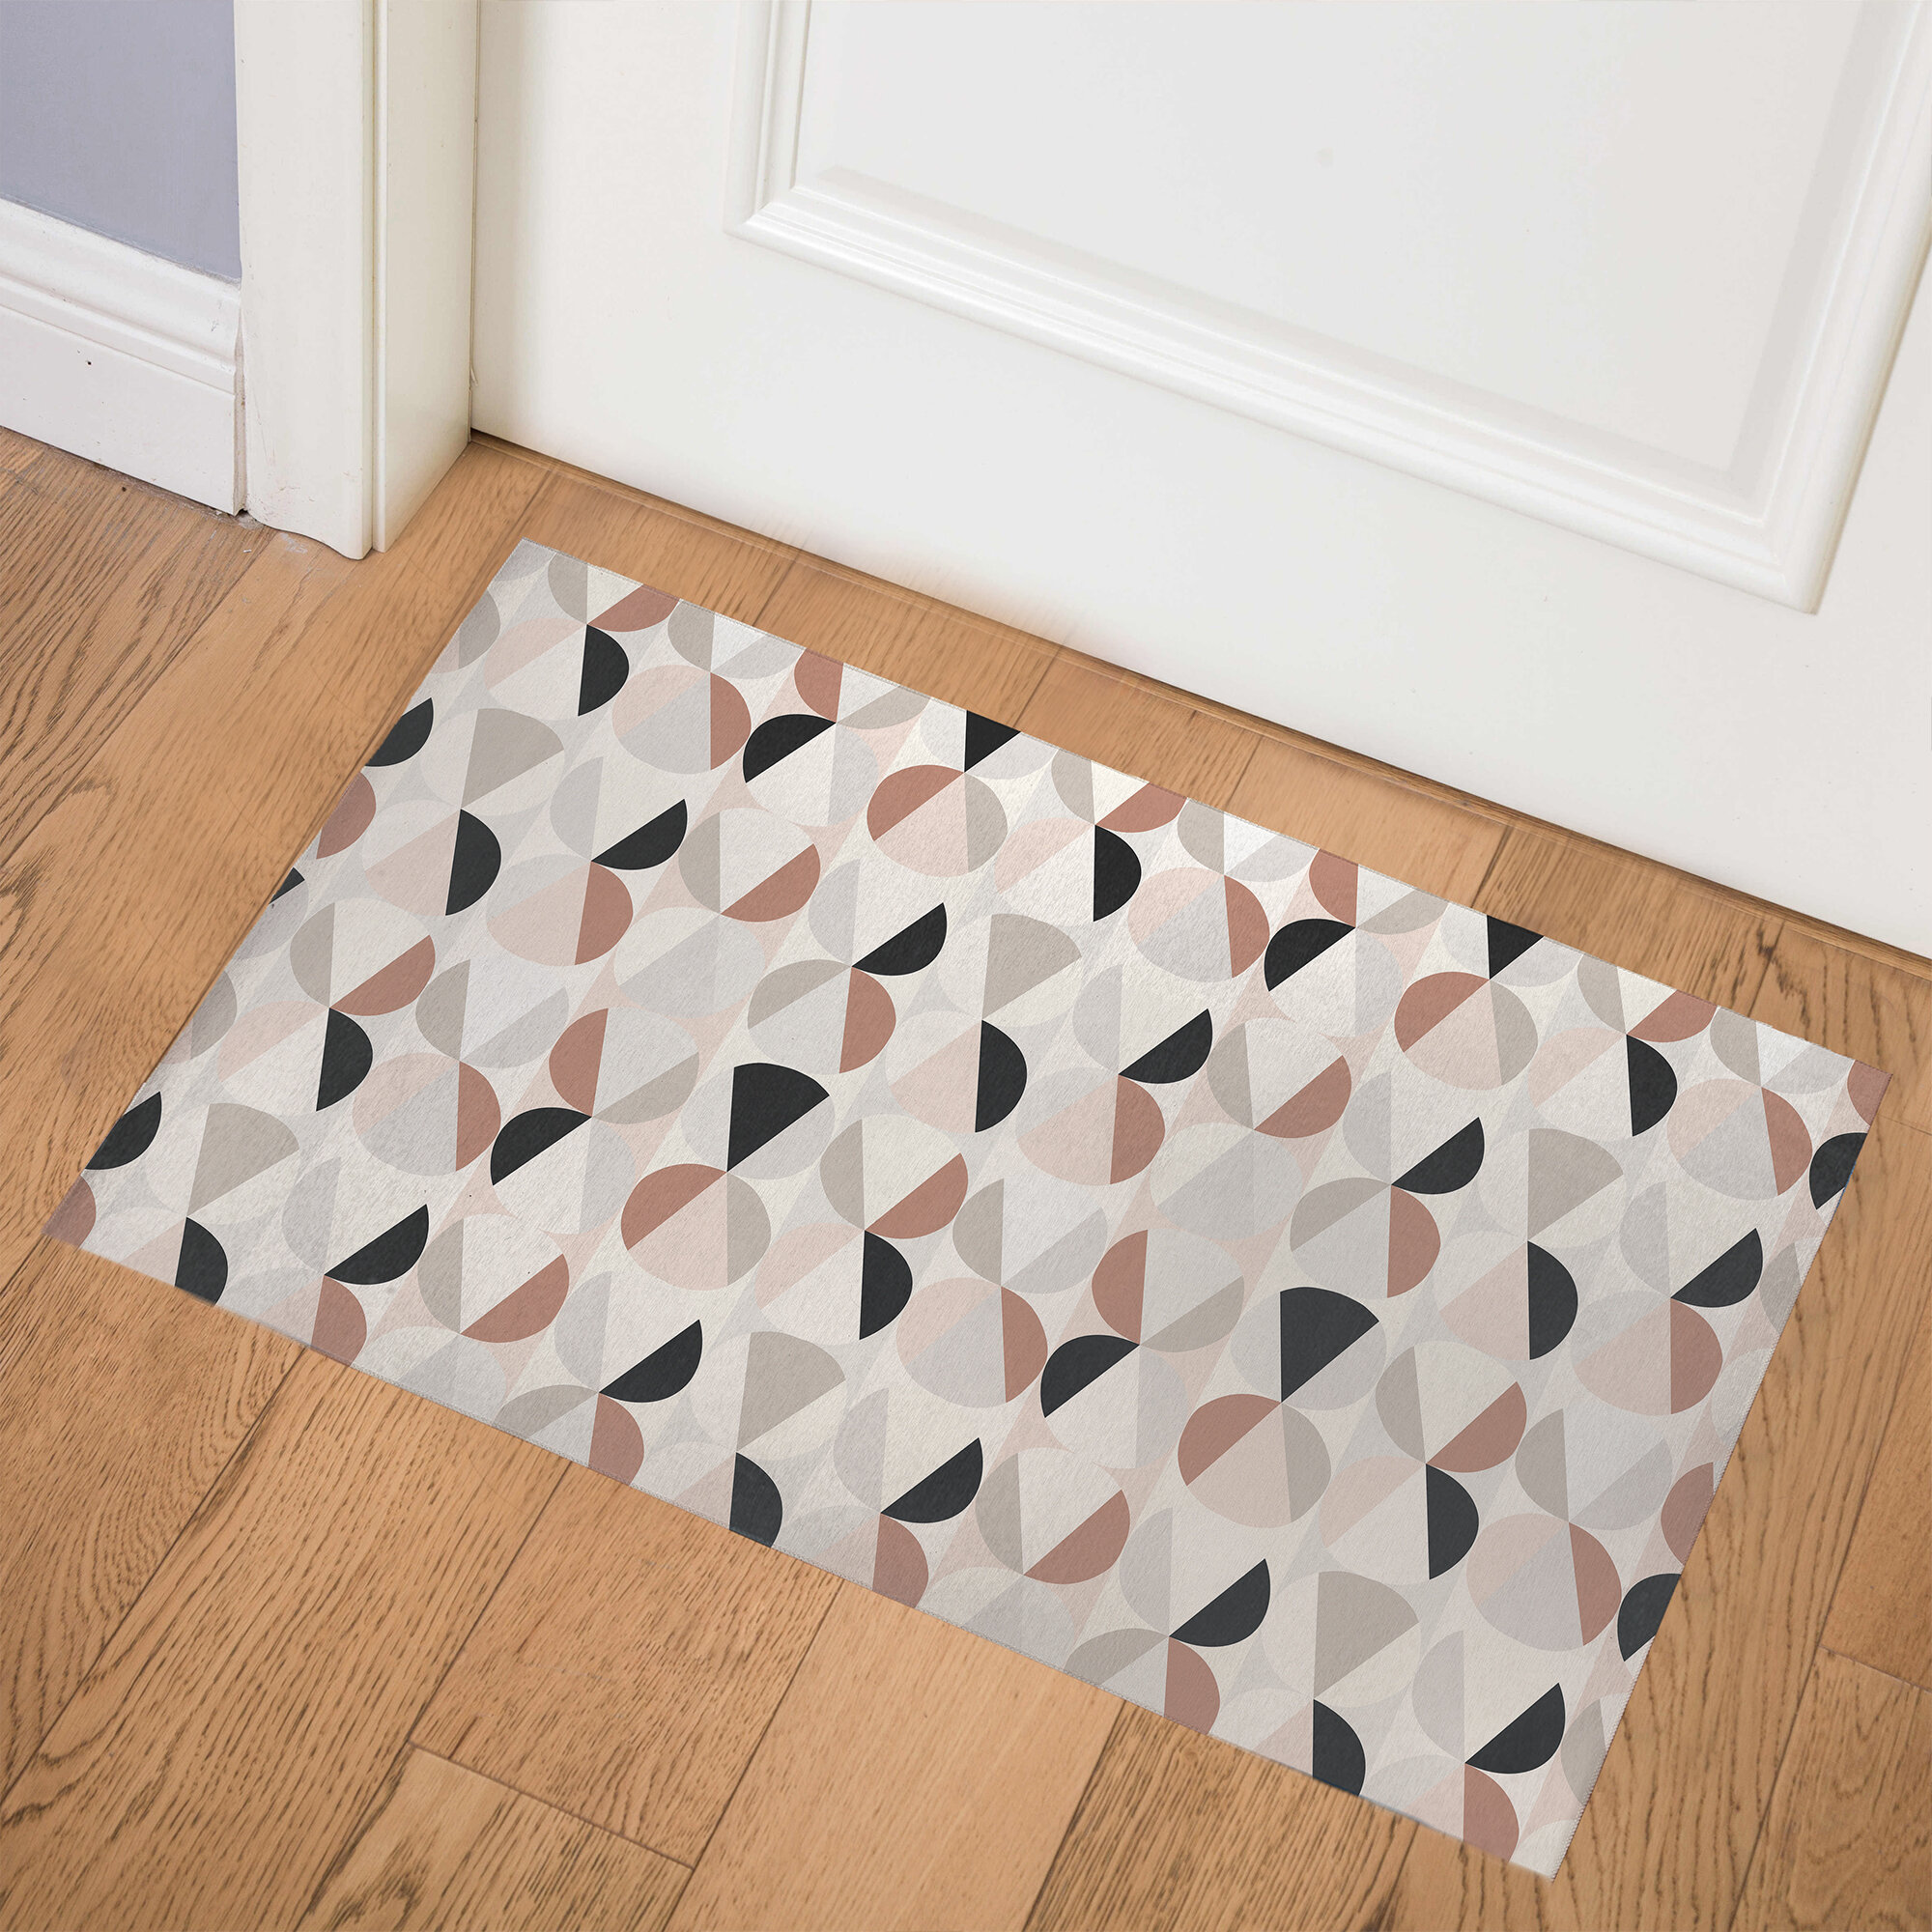 Round Corrigan Studio Door Mats You Ll Love In 2021 Wayfair